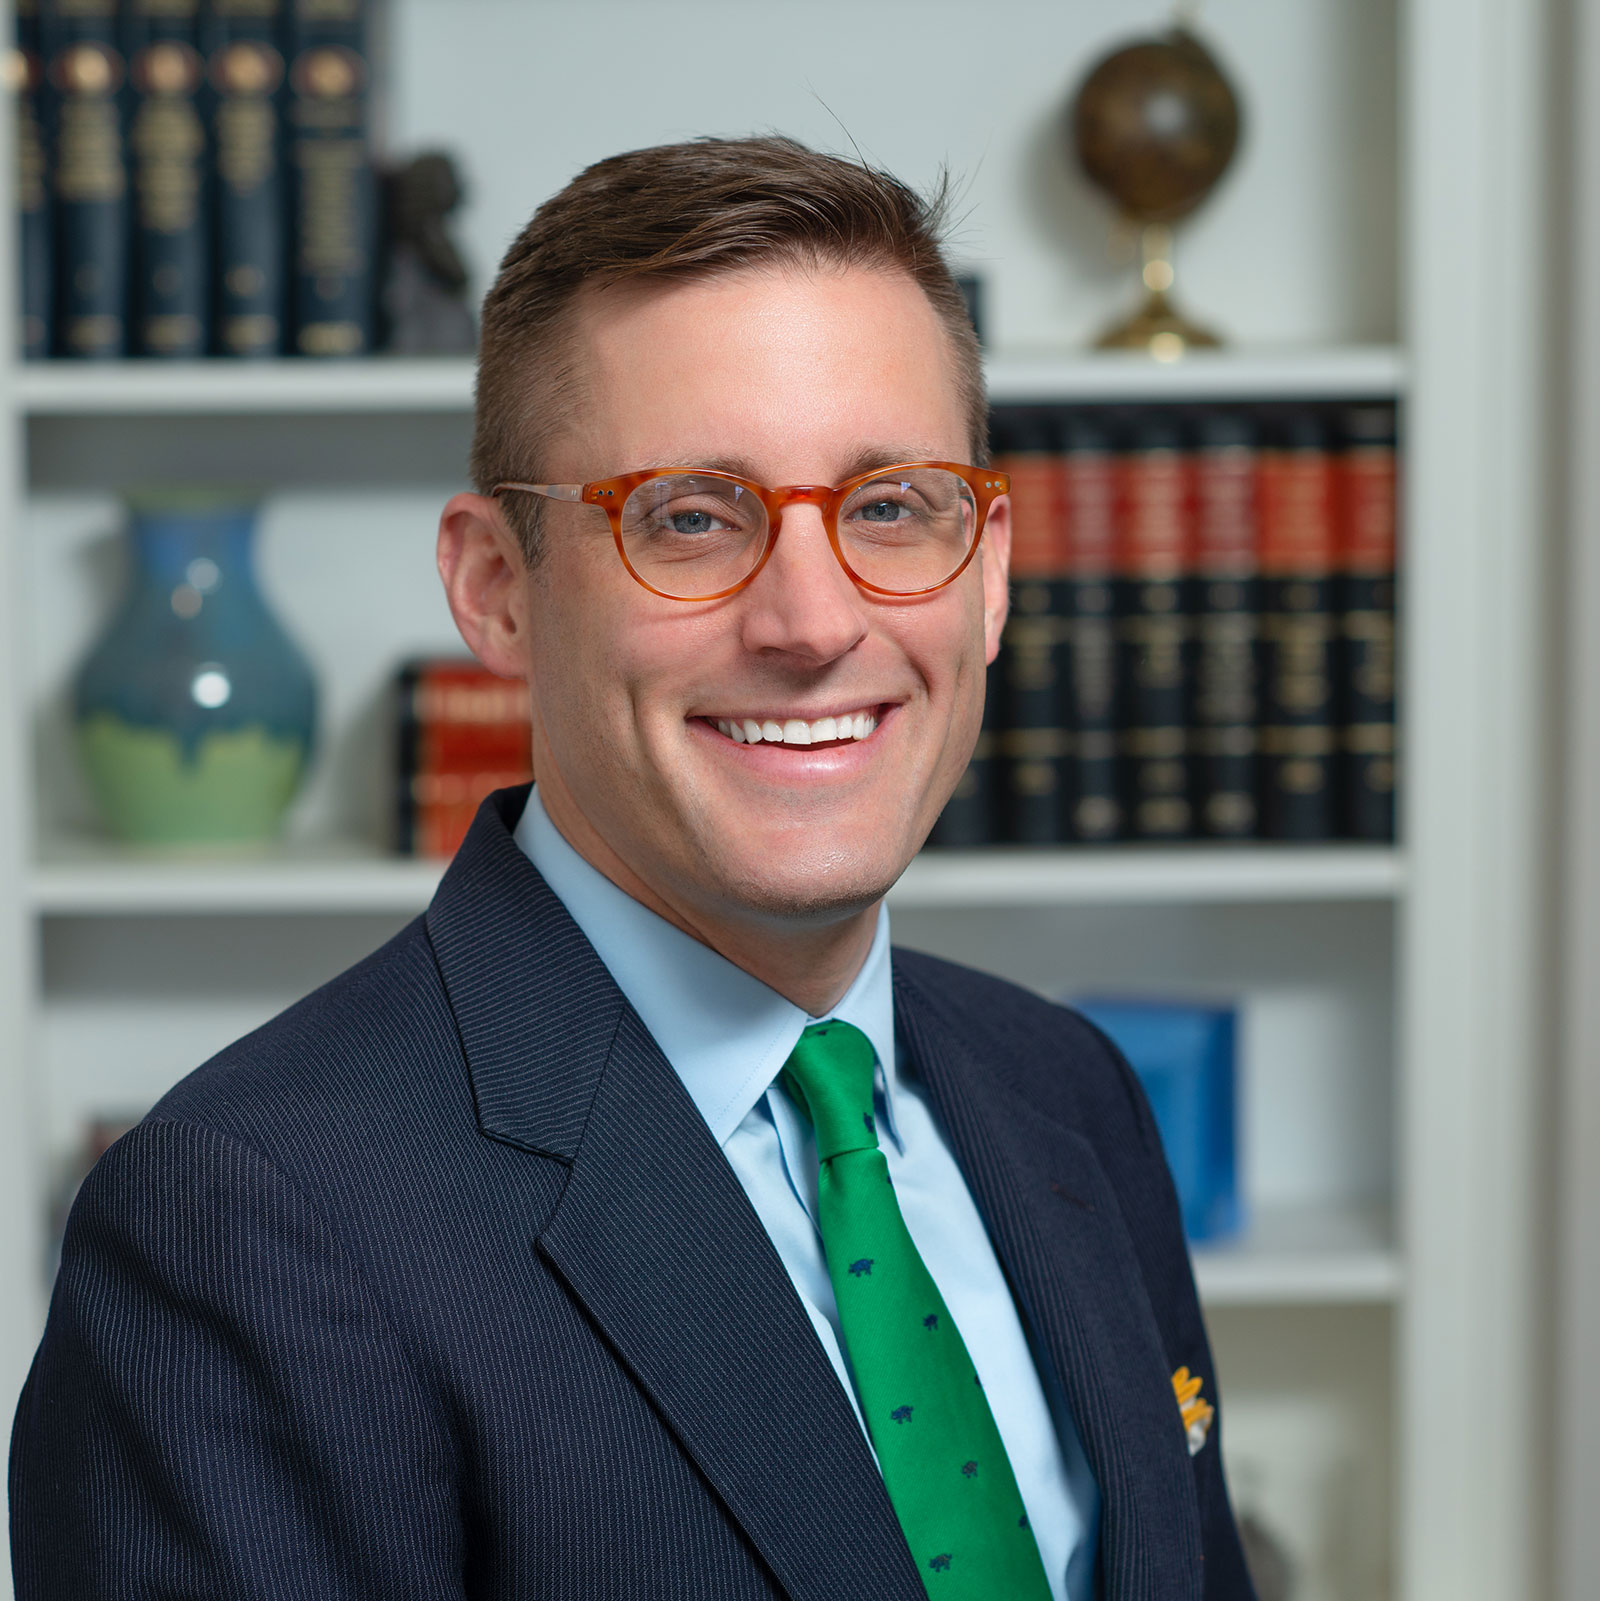 Head shot of Eric Teusink, a real estate attorney in Atlanta, Georgia and founding partner of Williams Teusink.